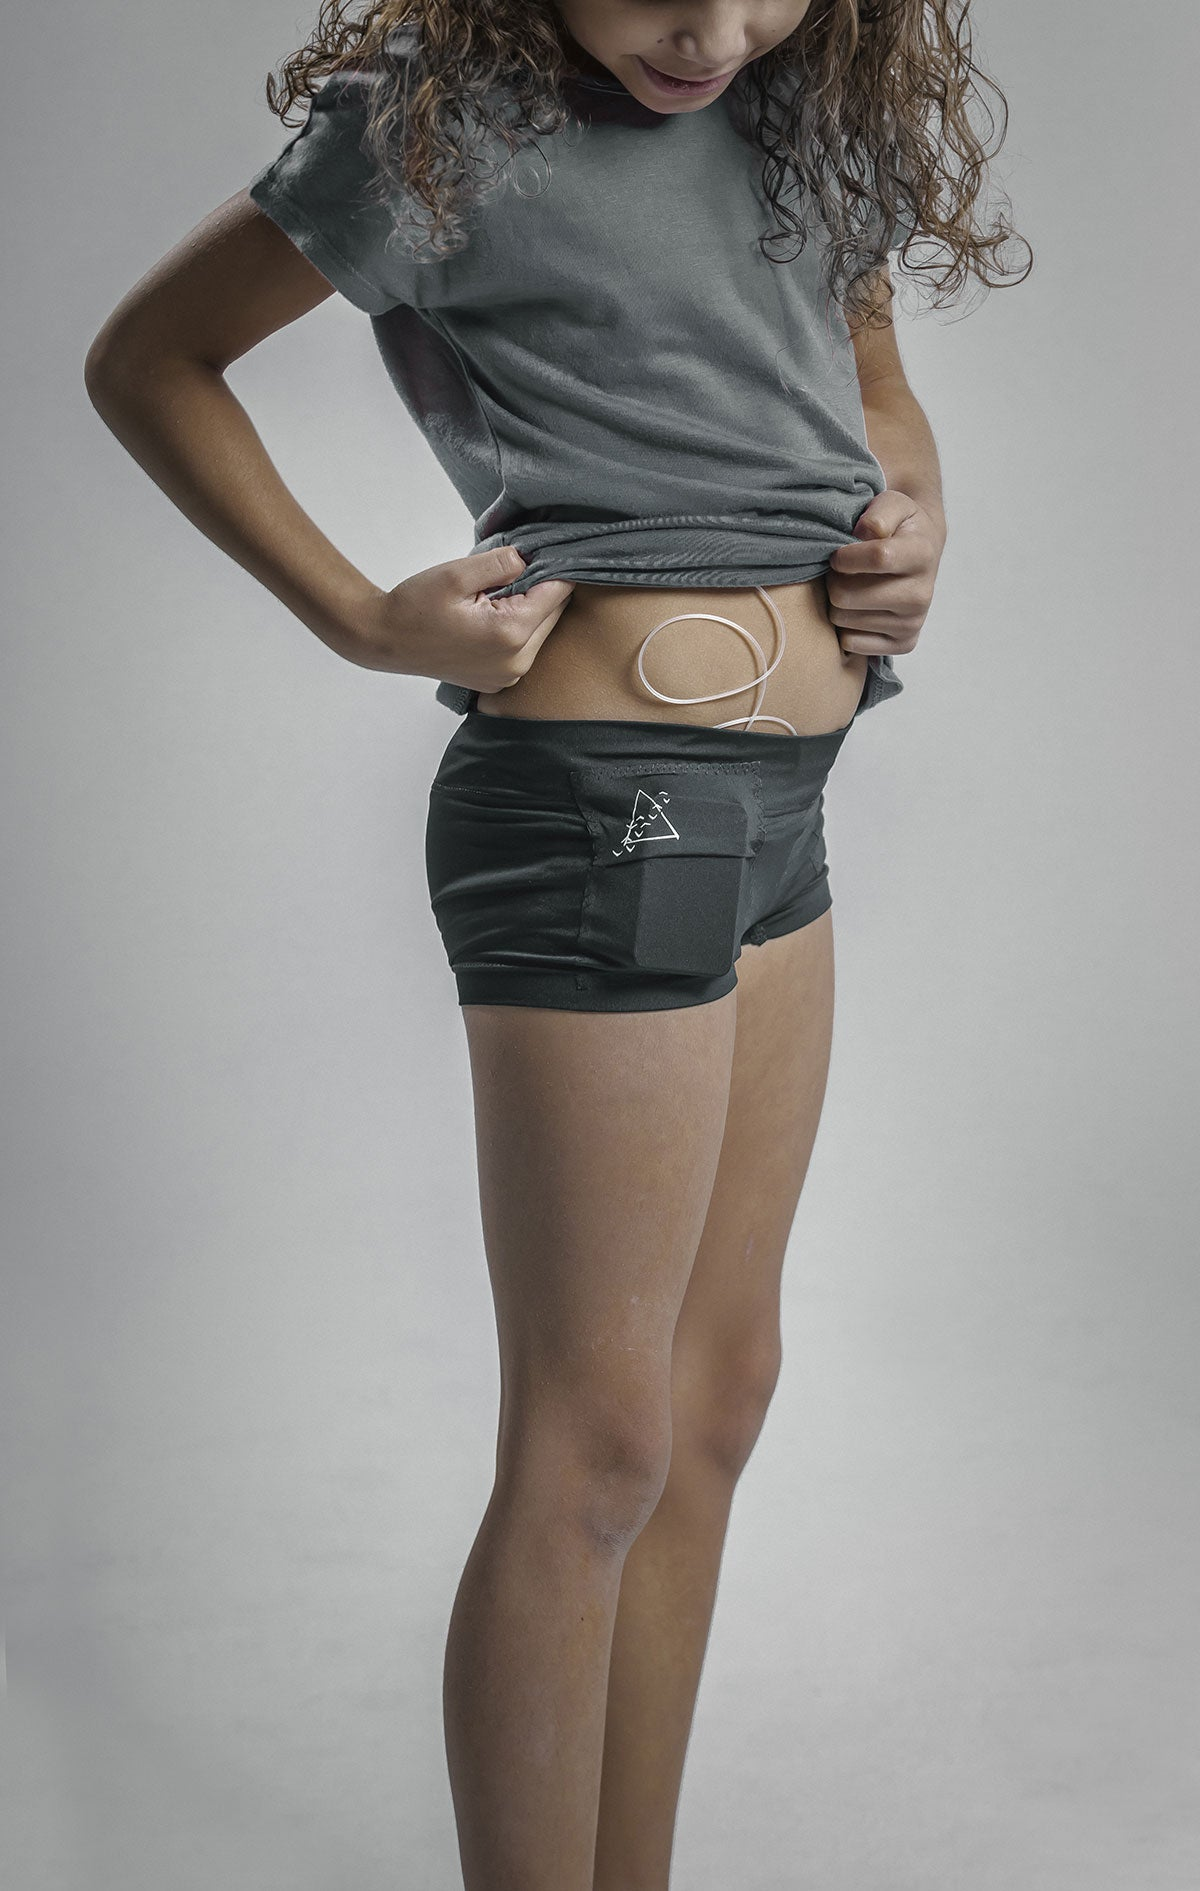 Girl's Boyshort Insulin Pump Pocket Underwear